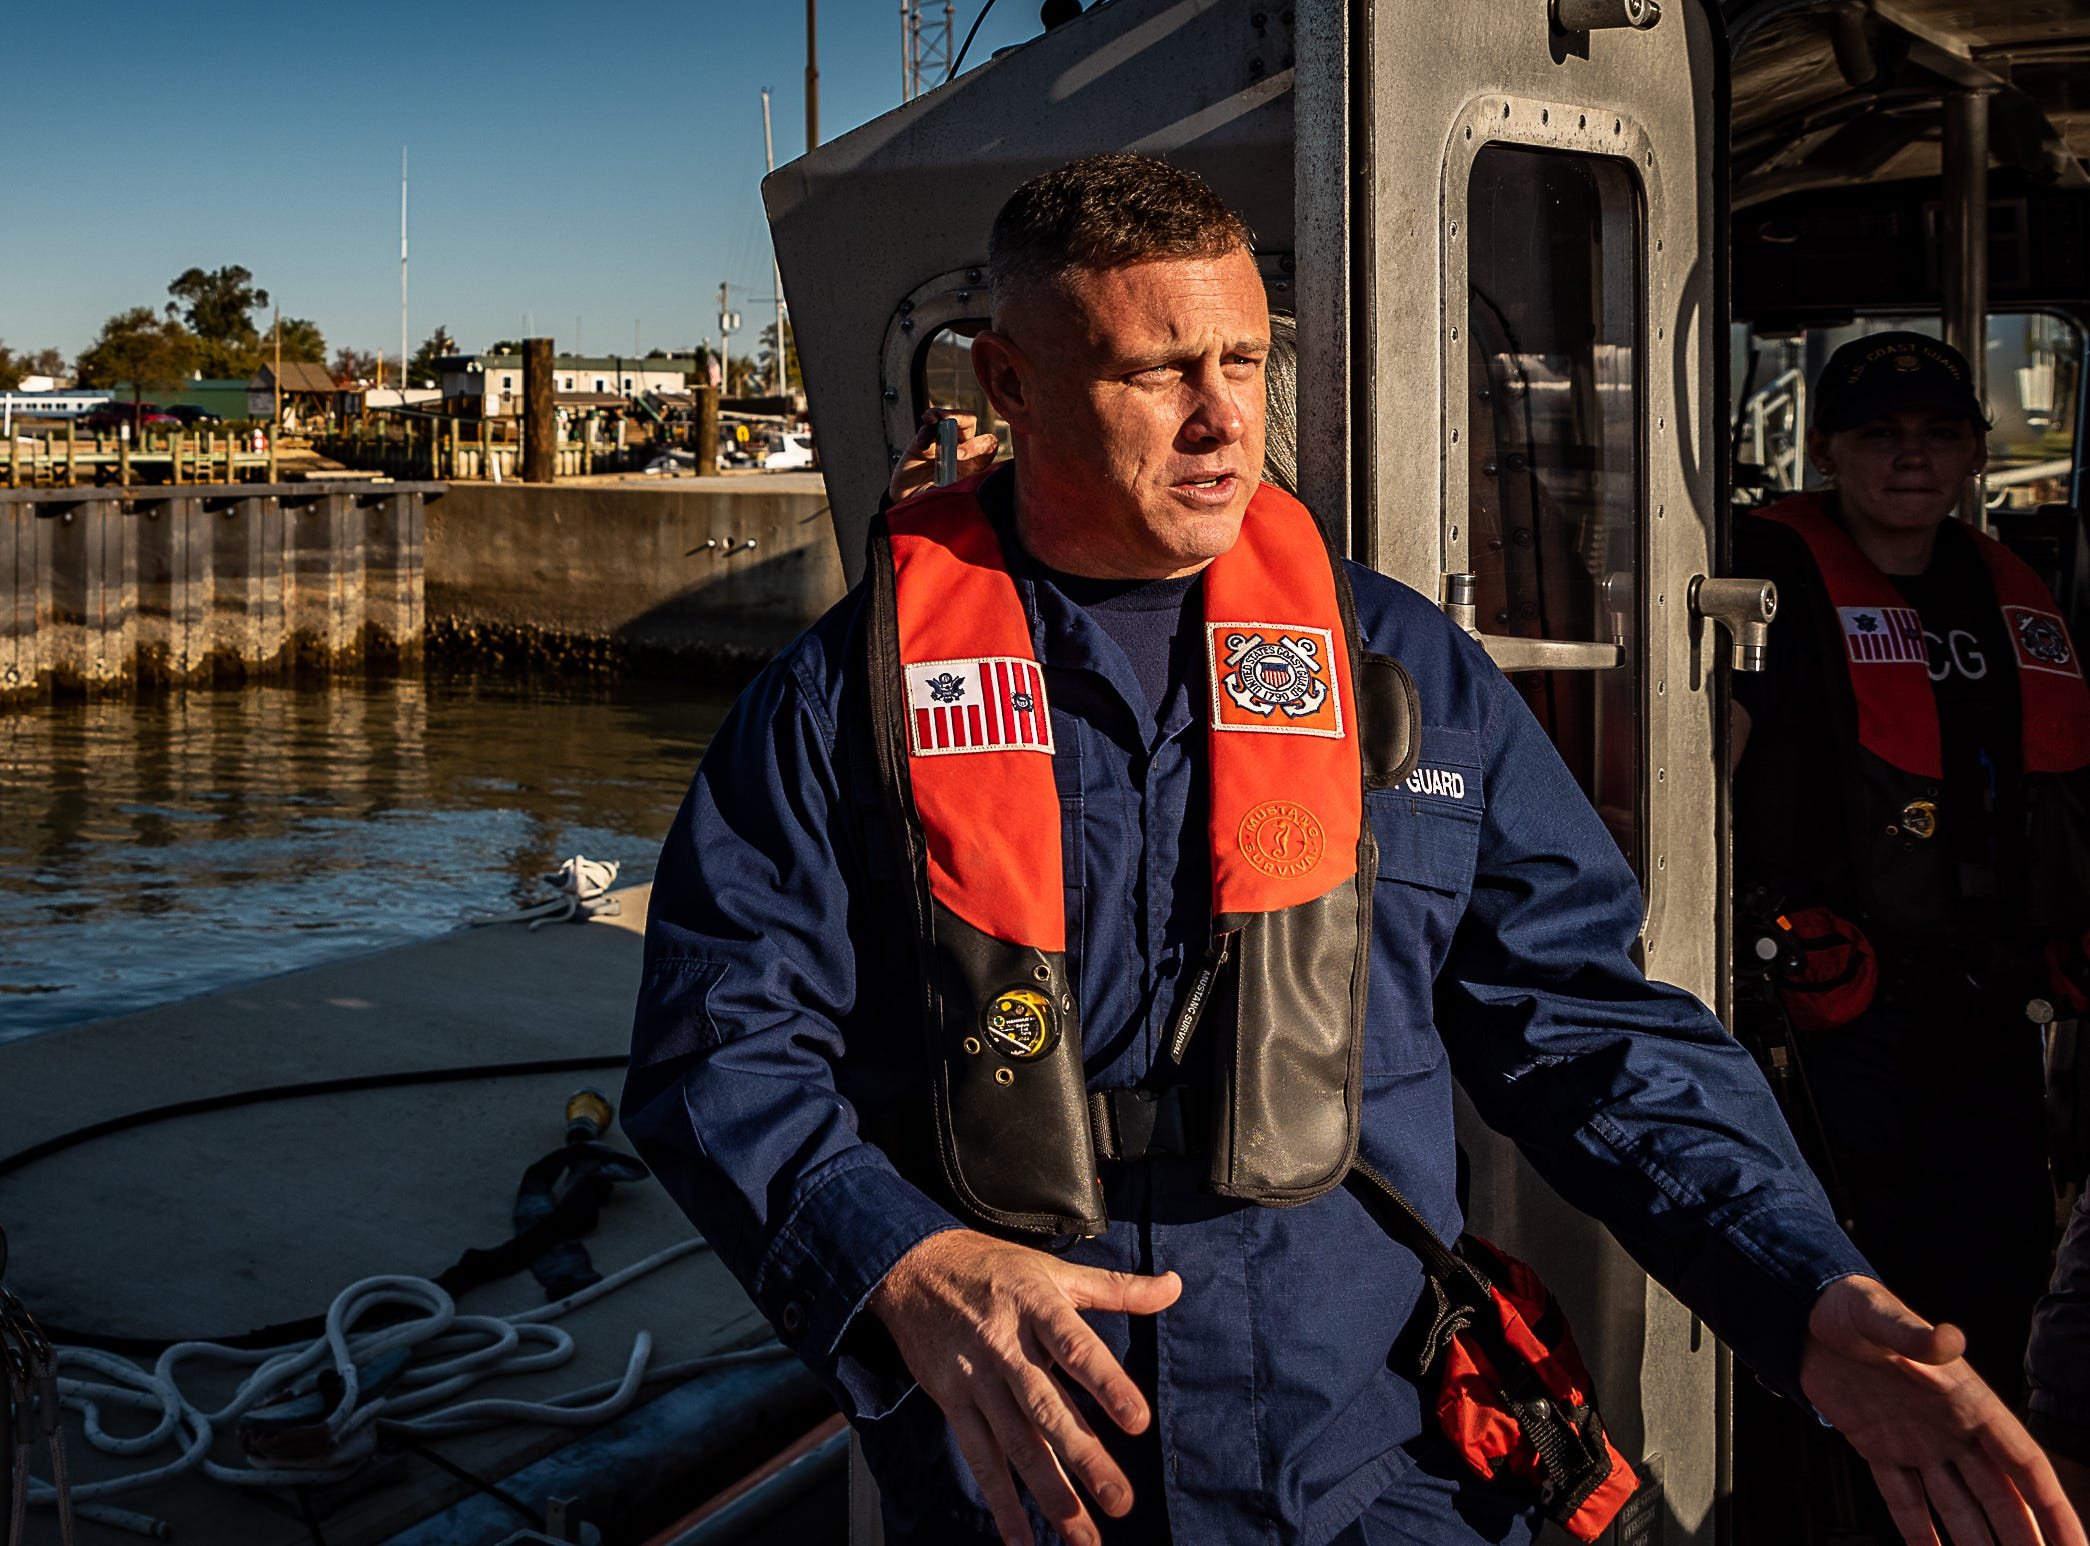 Lt. Gary George speaks during a U.S. Coast Guard cold-water demonstration in Cape Charles, Virginia on Tuesday, Oct. 30, 2018.